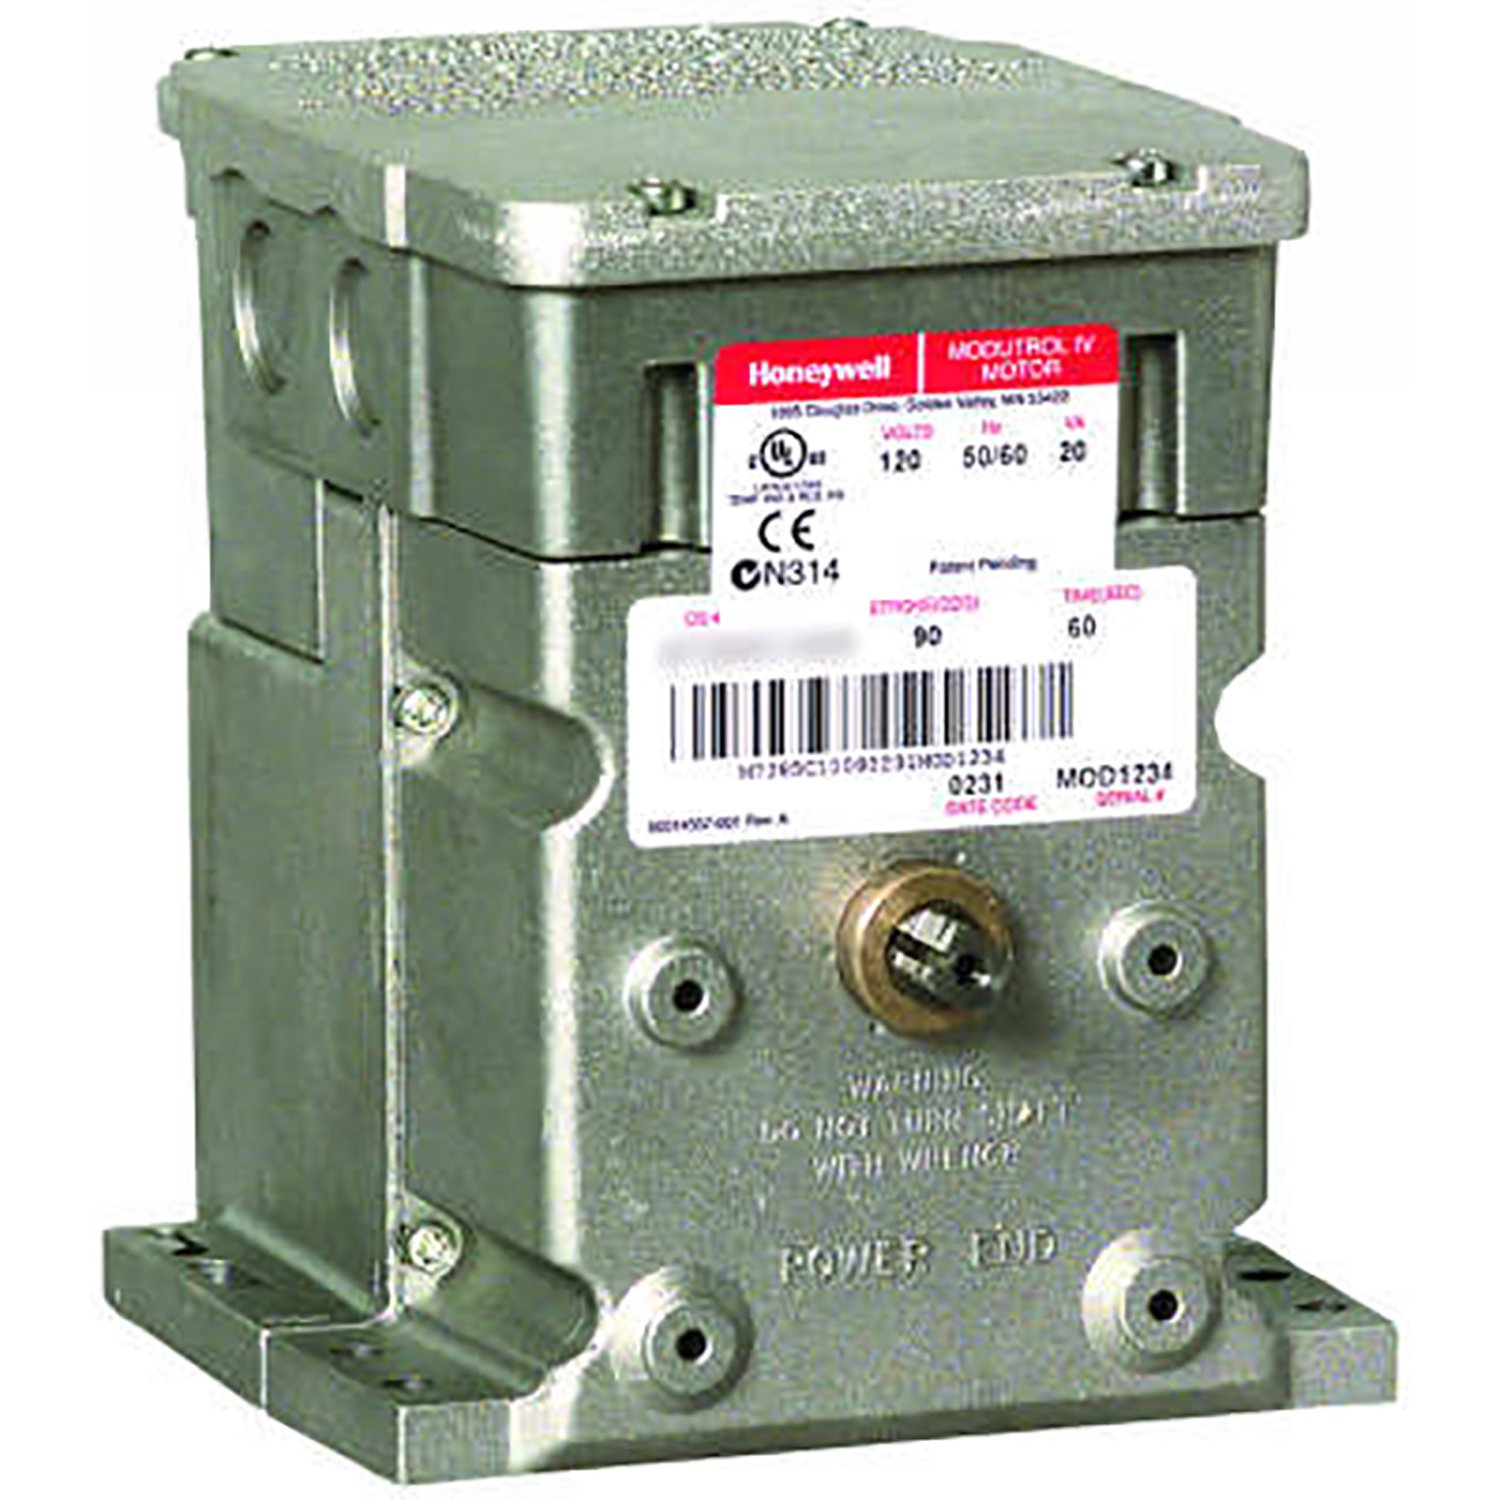 Honeywell M9484F1031 Modutrol IV Motor, 150 lb., 2 Switch